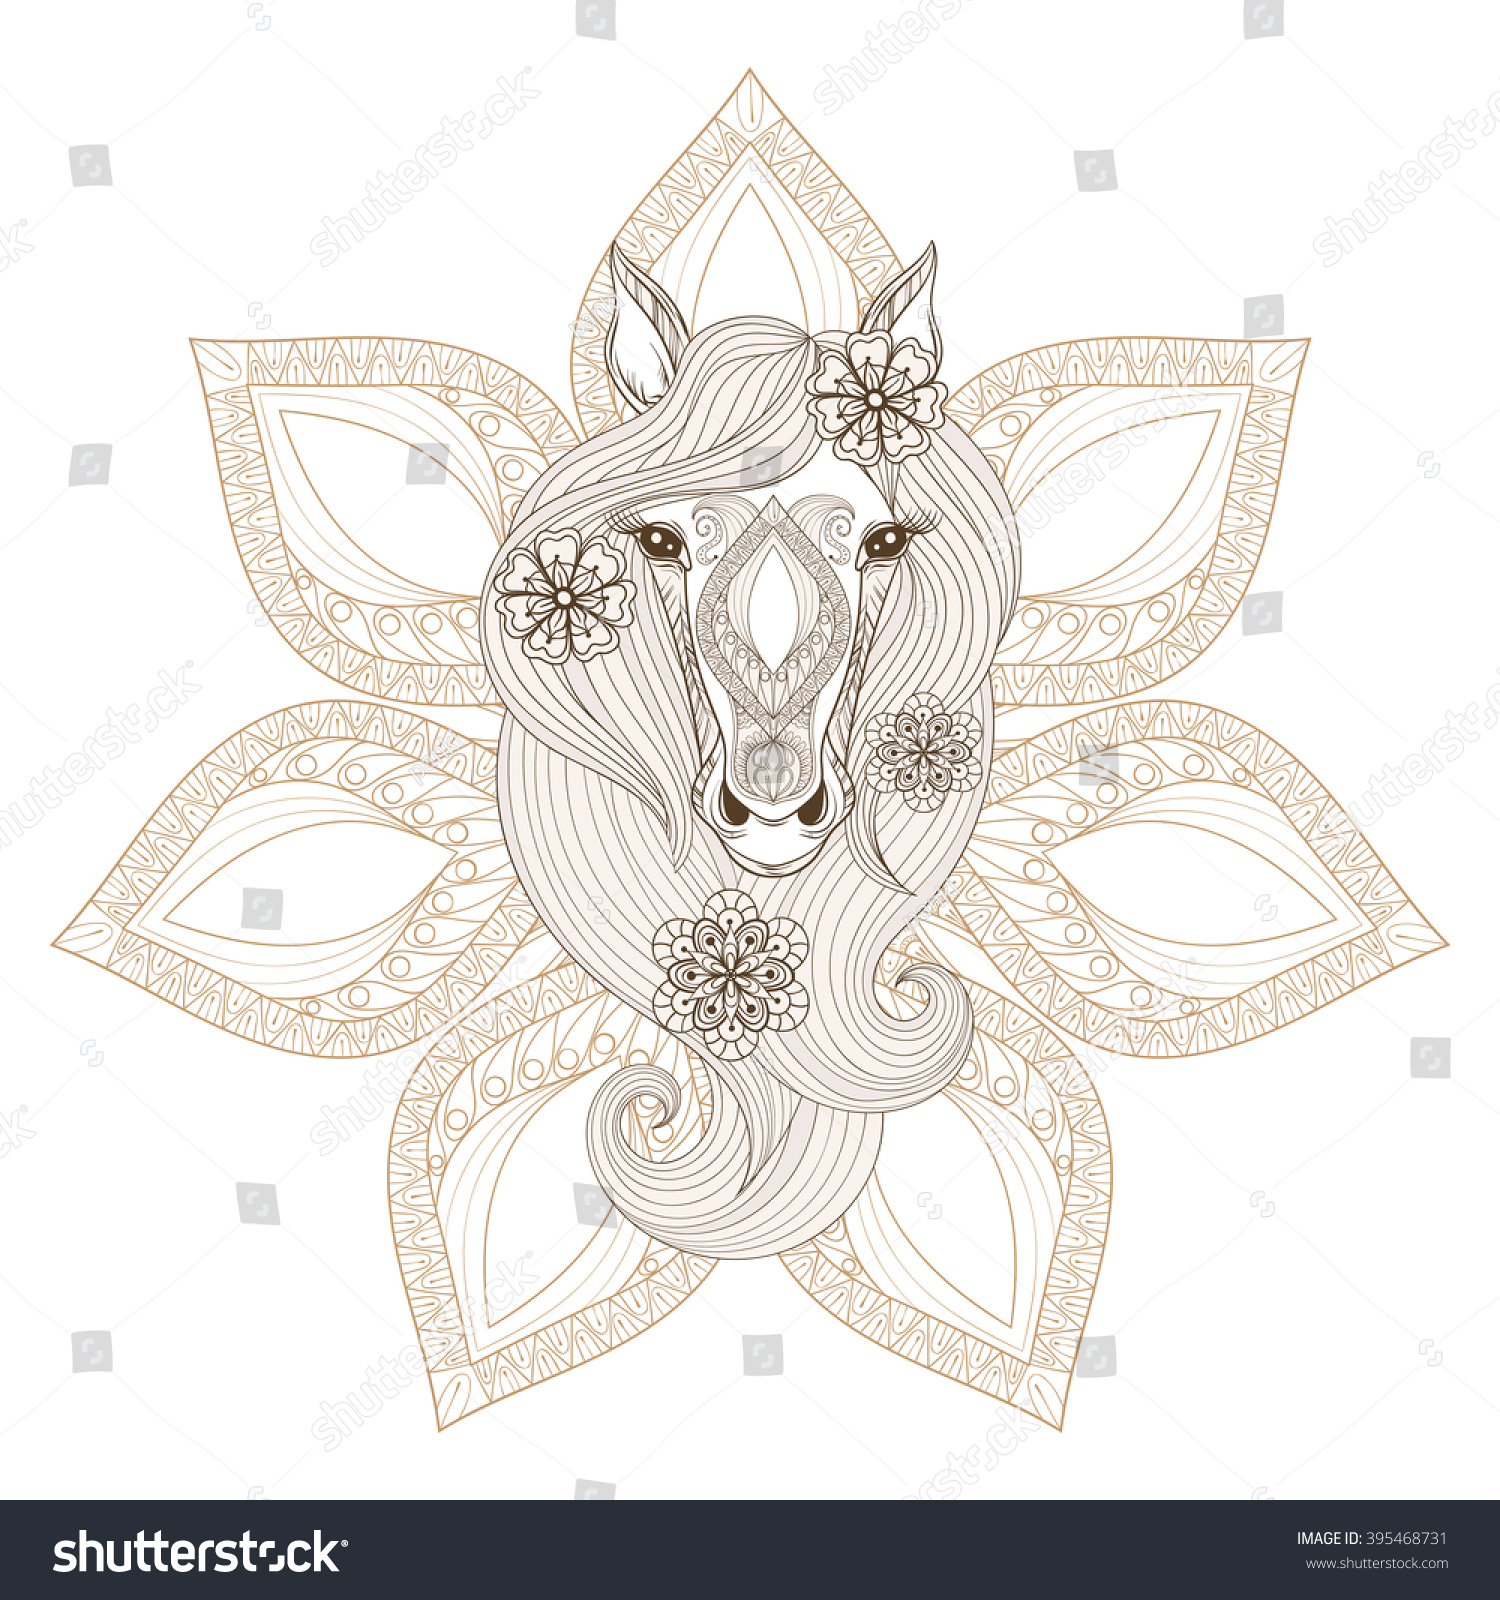 Horse Head Coloring Page #5